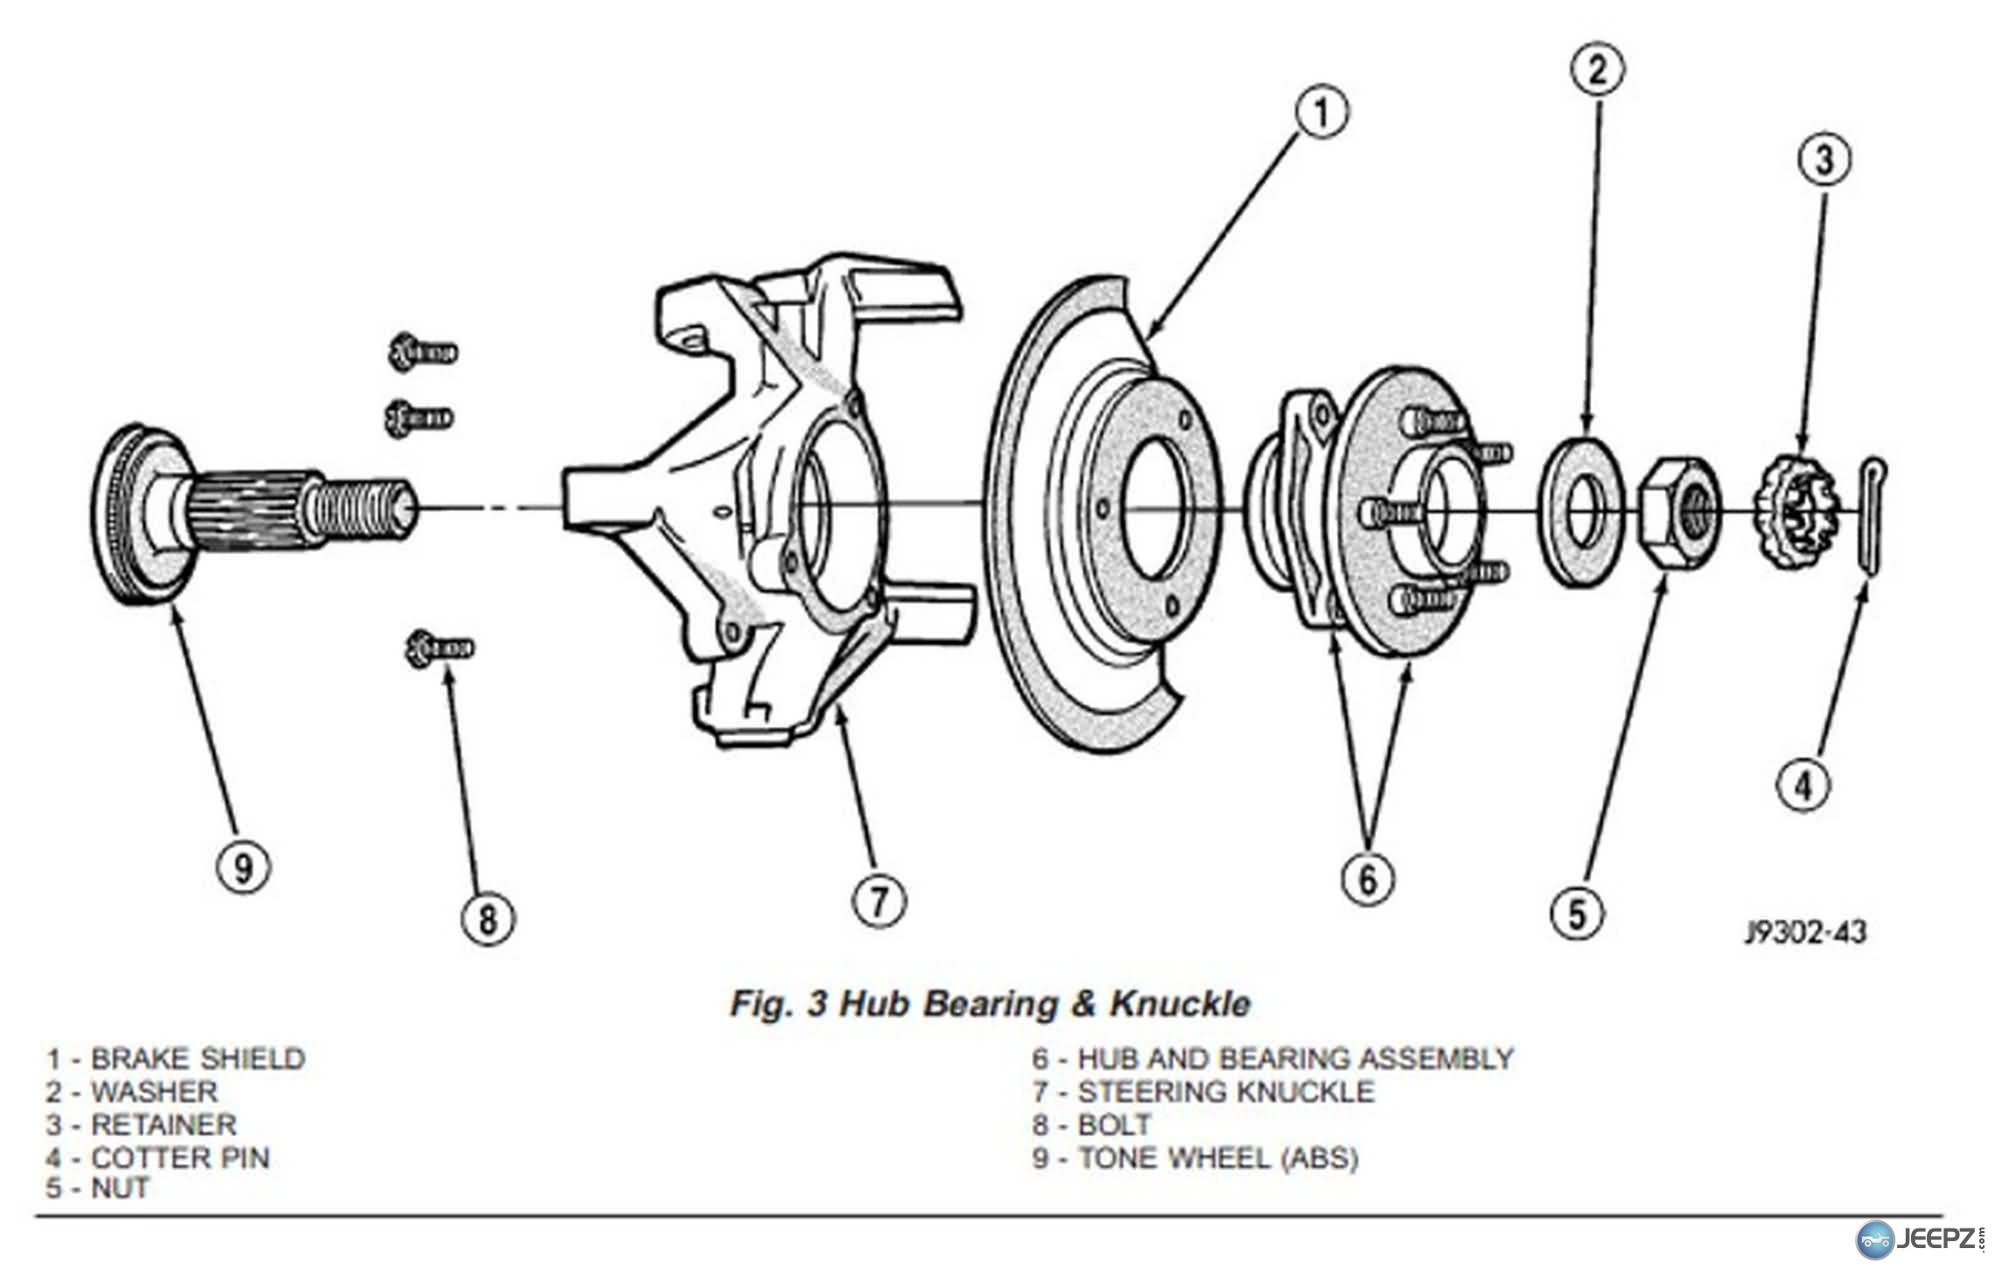 42877 Wrangler Tj Wheel Hub Bearing Assembly Replacement besides Fichier Alfetta front suspension as well RepairGuideContent likewise Removal Of Axle Shaft 1992 Volvo 940 as well Citroen Traction Avant Innovatie Van 80 Jaar Terug 67255. on how to replace the rear wheel bearings on a 2003 buick